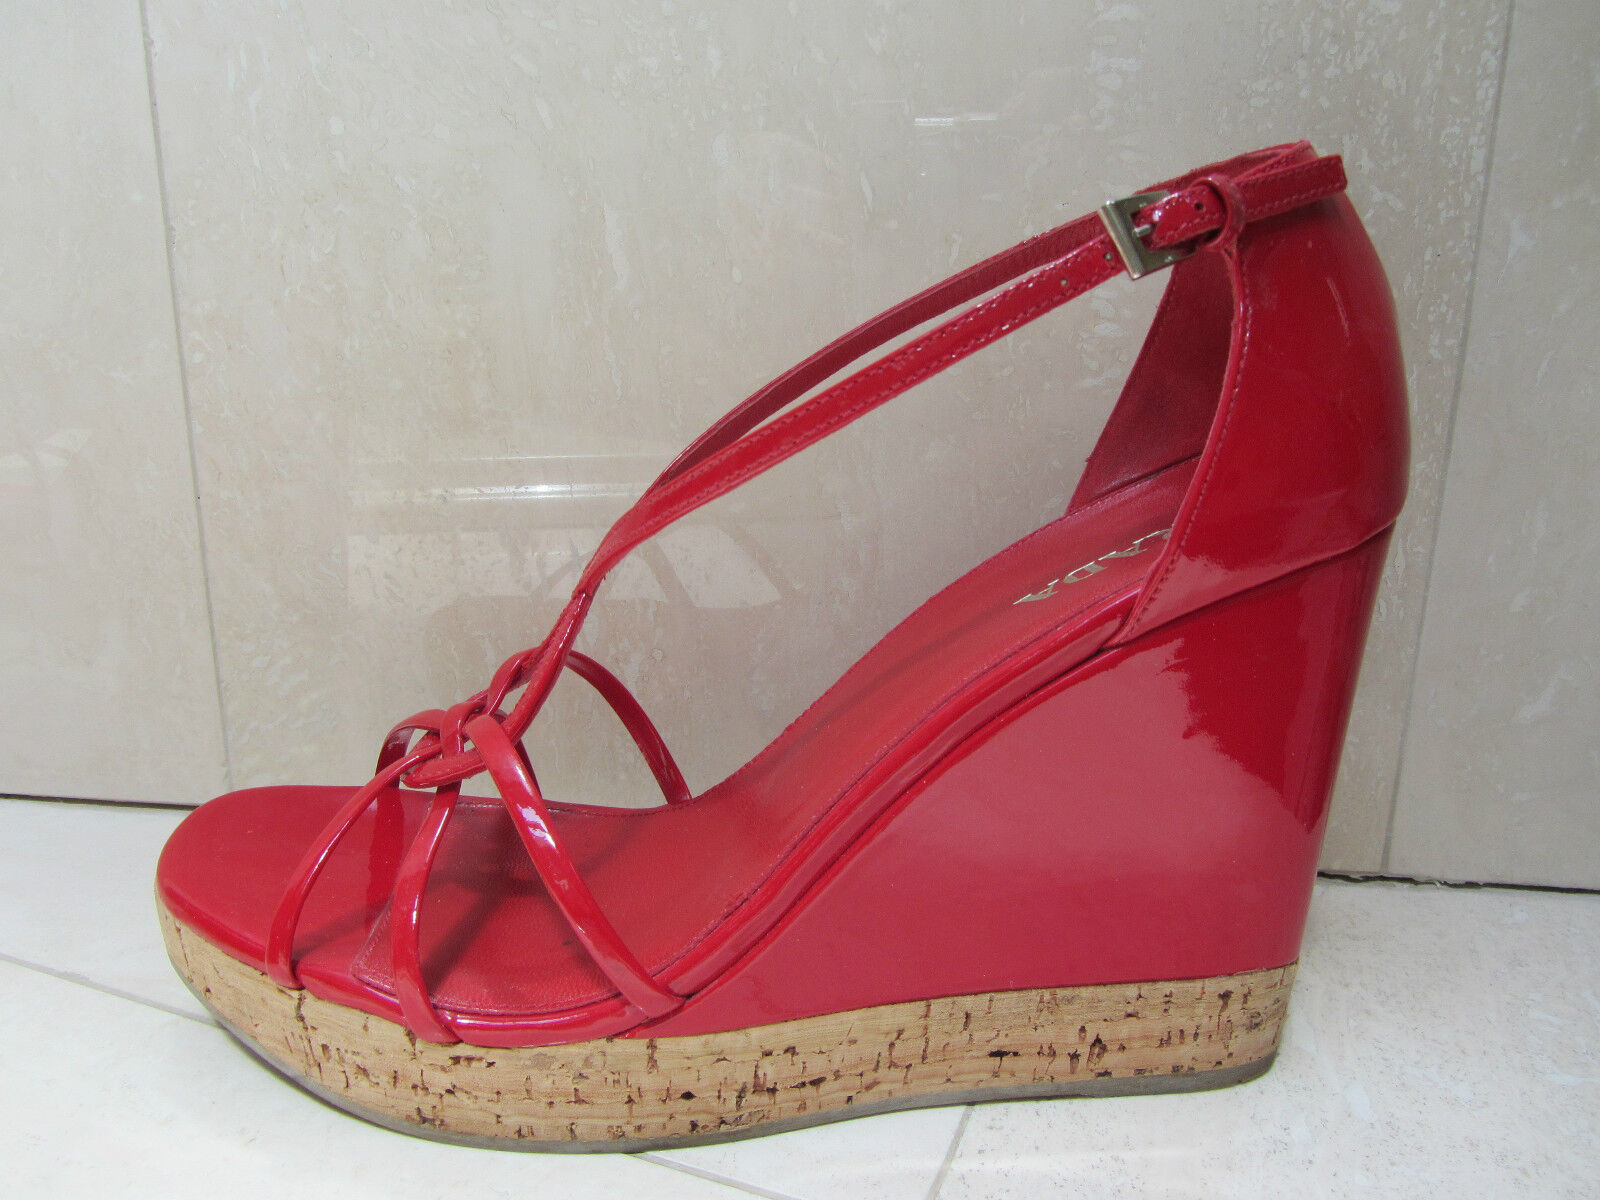 PRADA Rosso Patent Platform Cork Wedge Strappy Sandals Open Toe Shoes 40